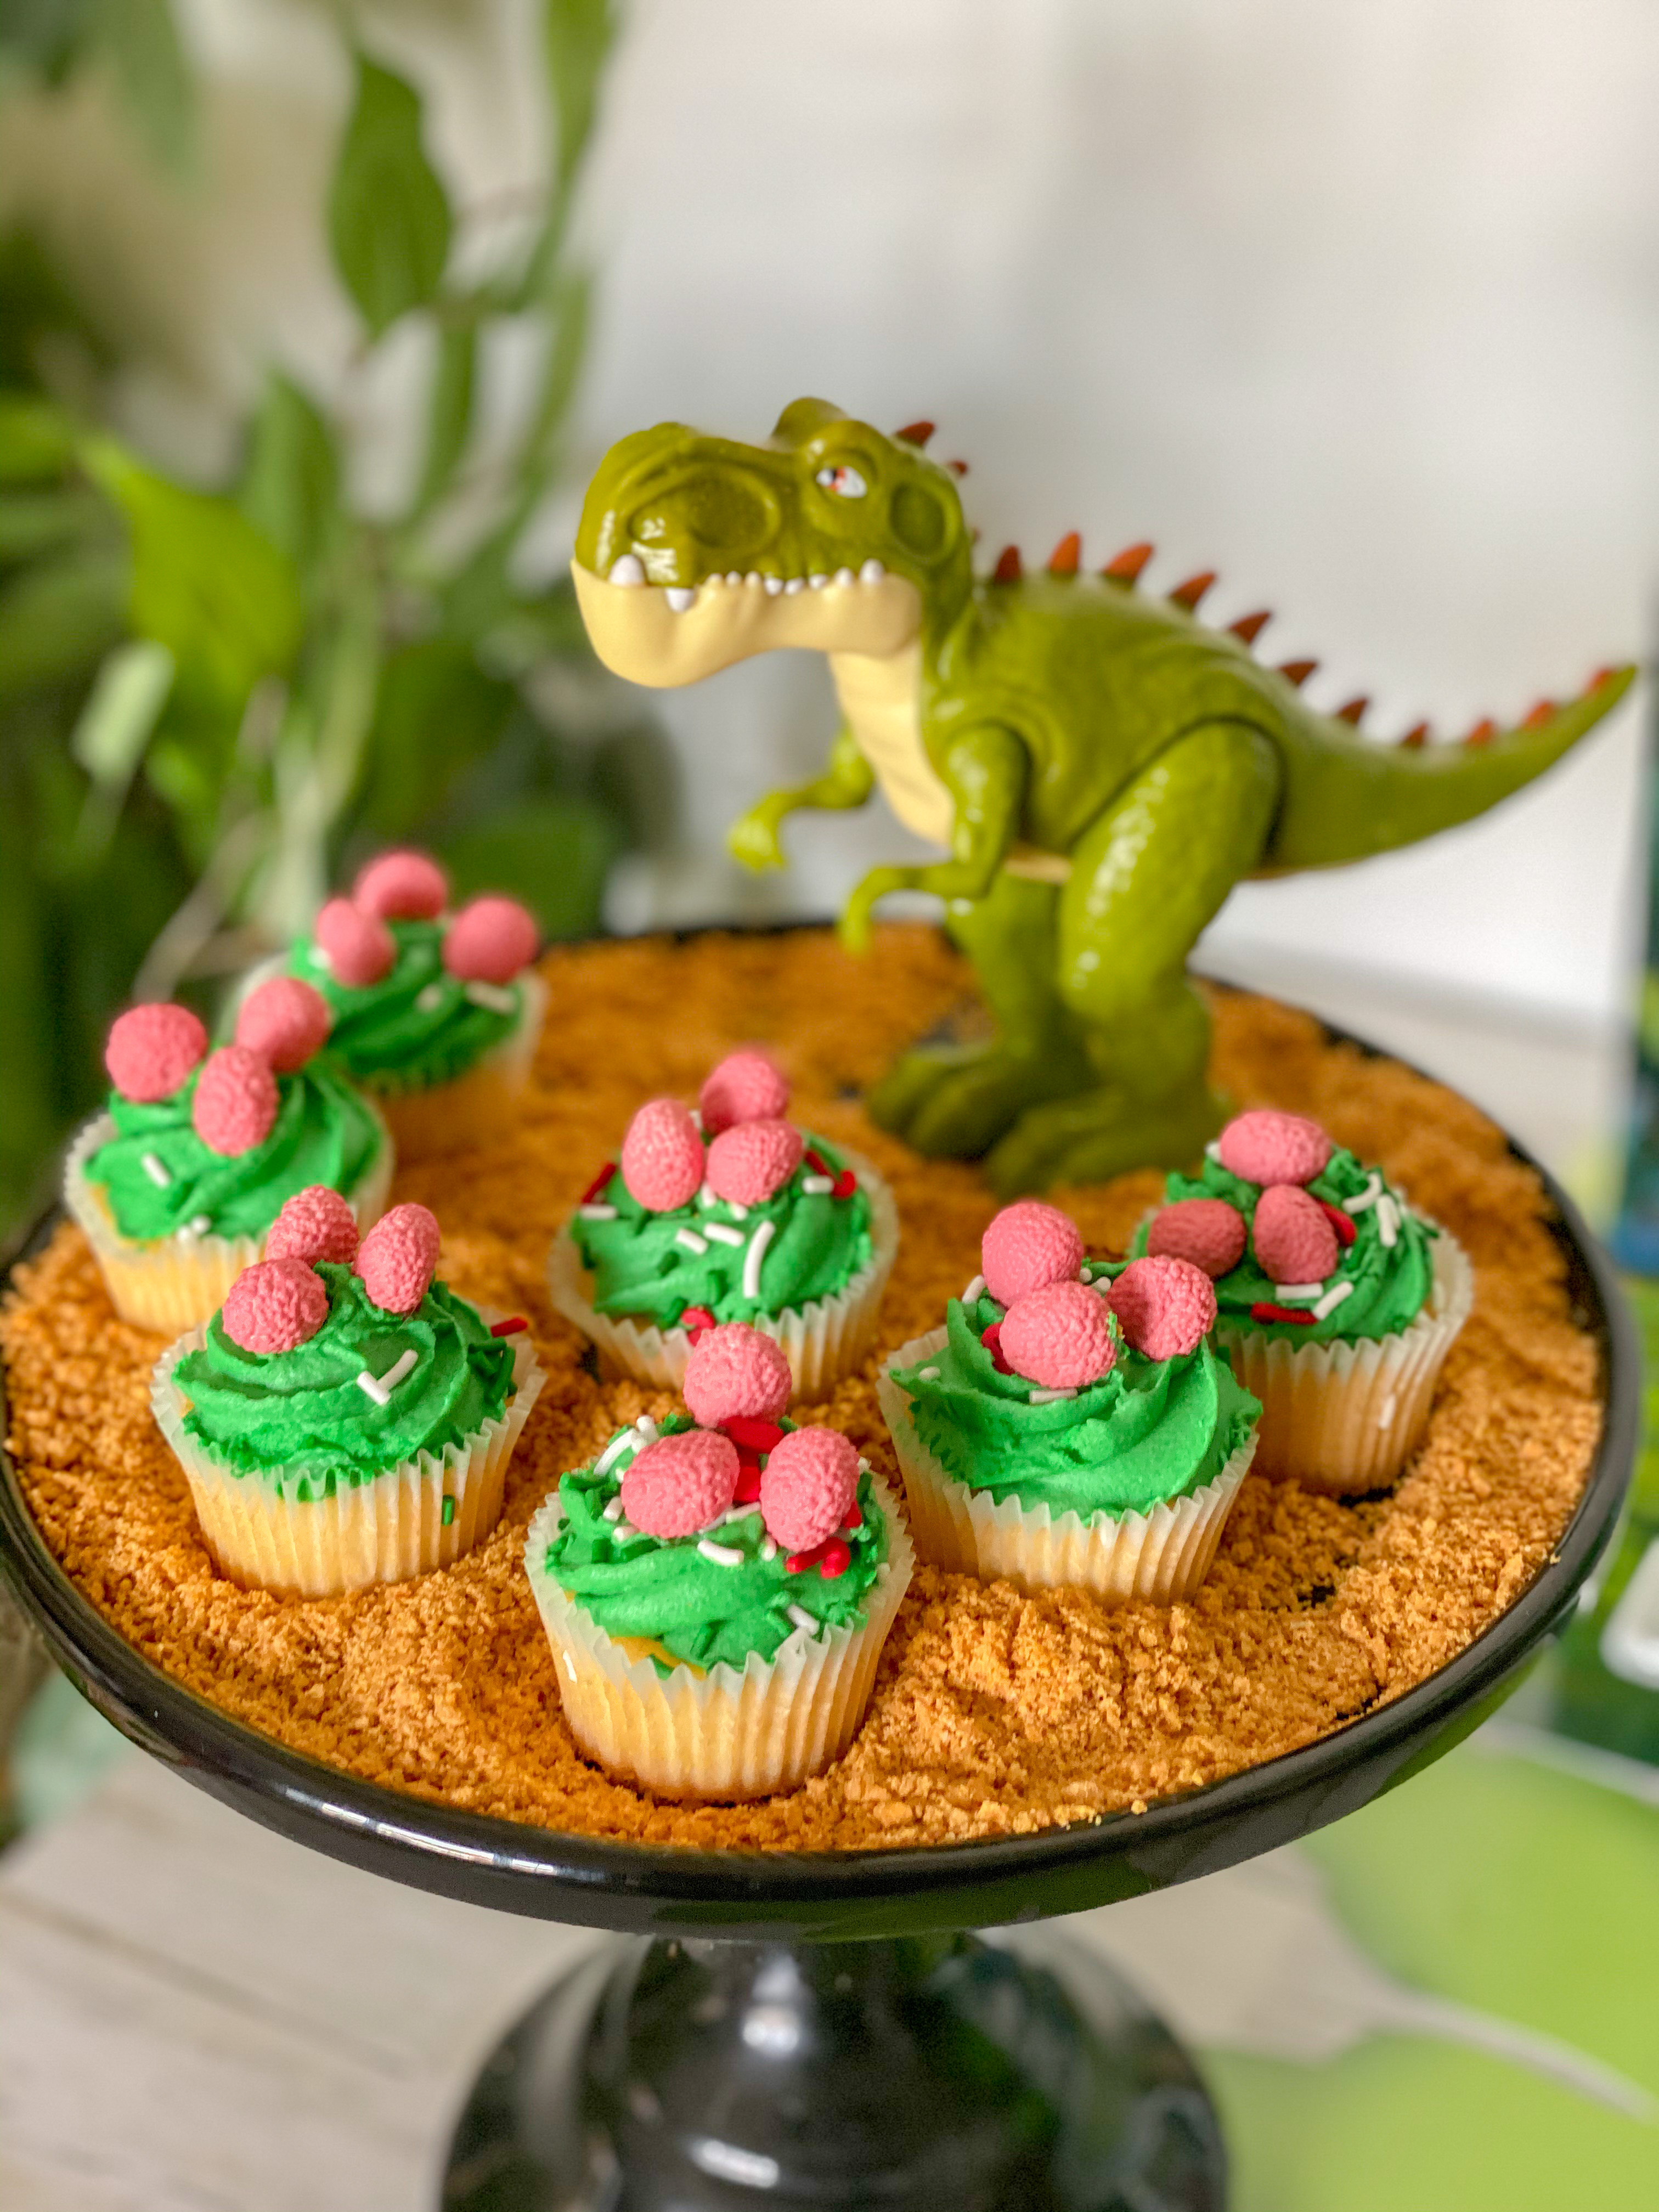 toy dino with Dino egg cupcakes